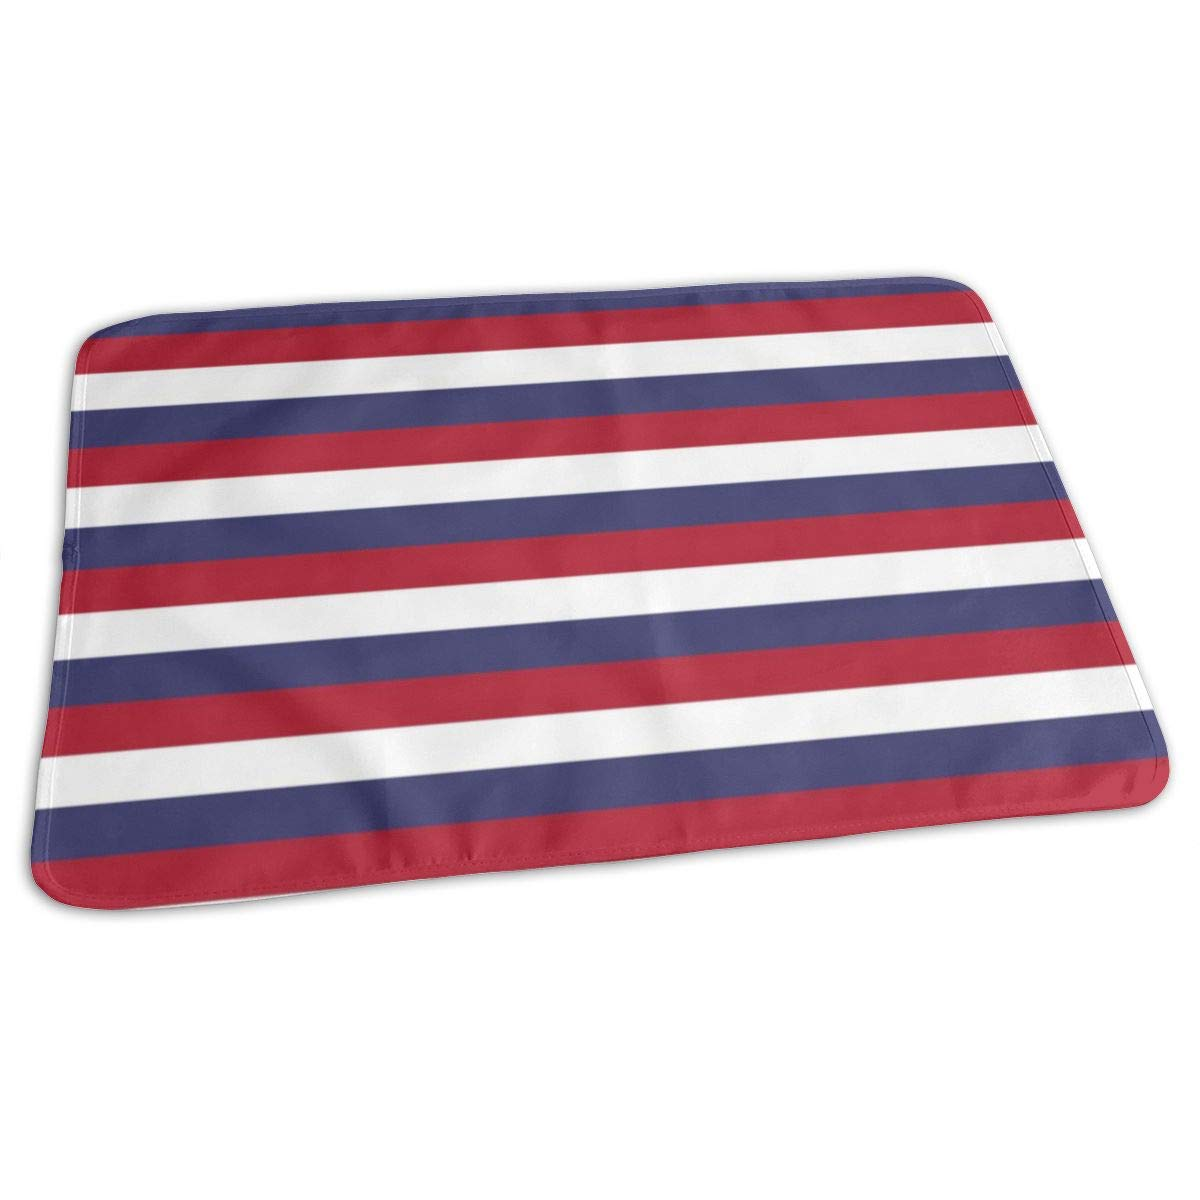 USA Flag Red, White And Blue Stripes Baby Portable Reusable Changing Pad Mat 19.7x27.5 inch